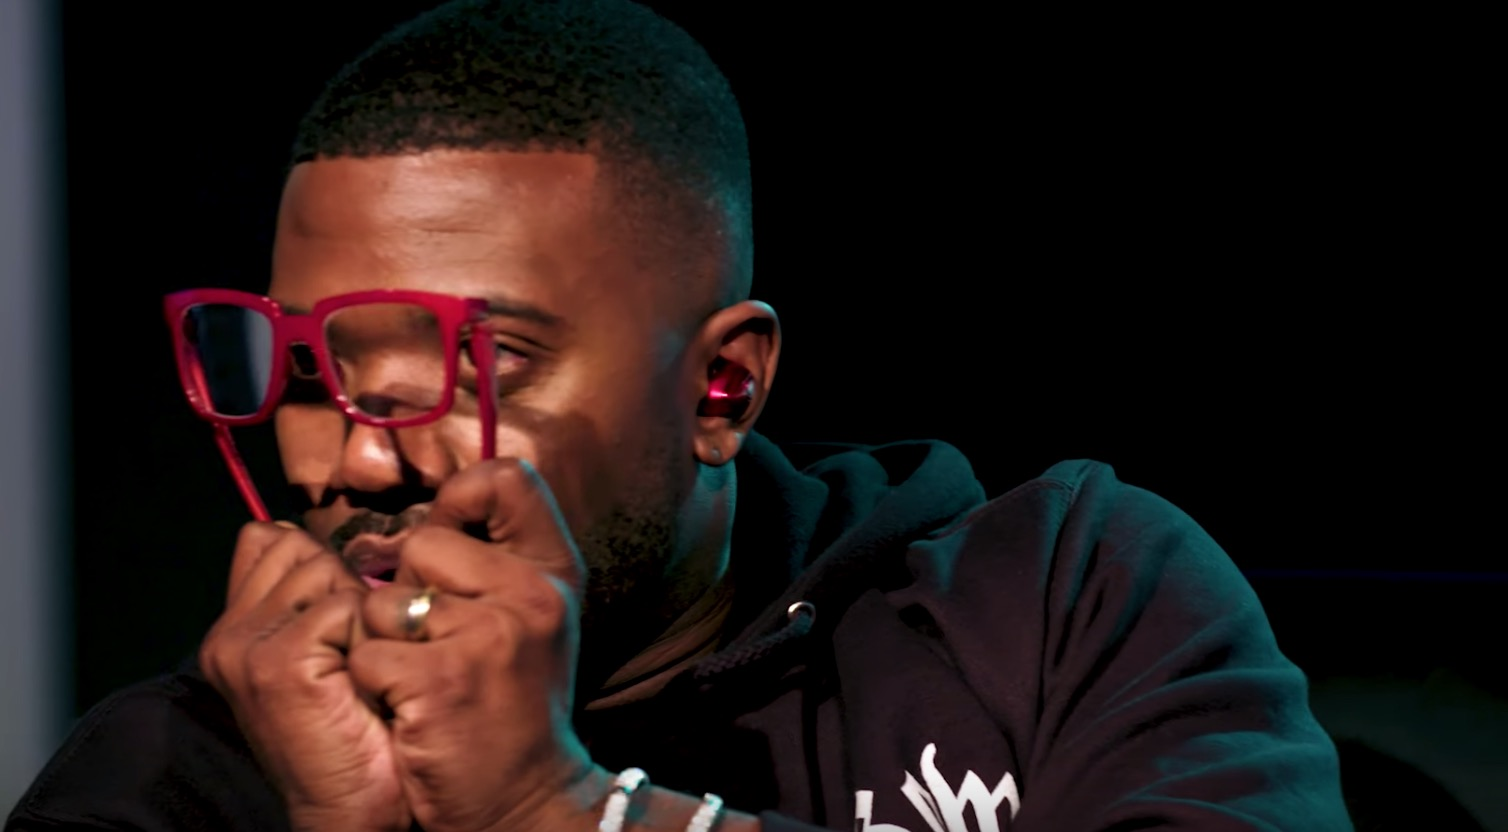 Rapper Insists To Interviewer That His Branded Glasses Are Unbreakable, And, Well, You Can See Where This Is Going